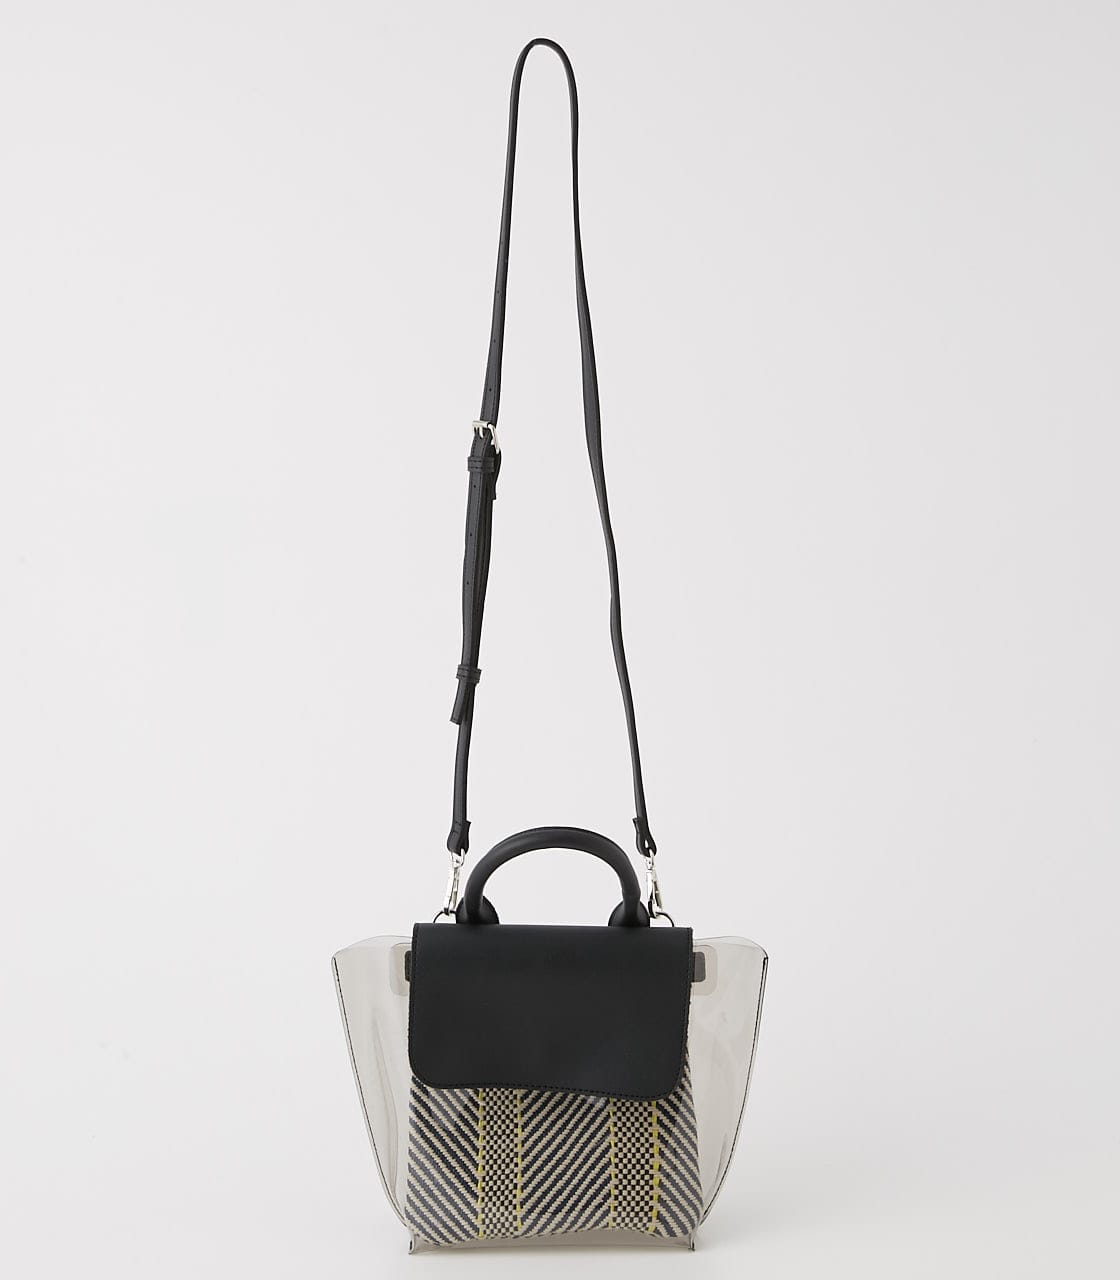 【AZUL BY MOUSSY】クリアショルダーバッグ 詳細画像 BLK 2